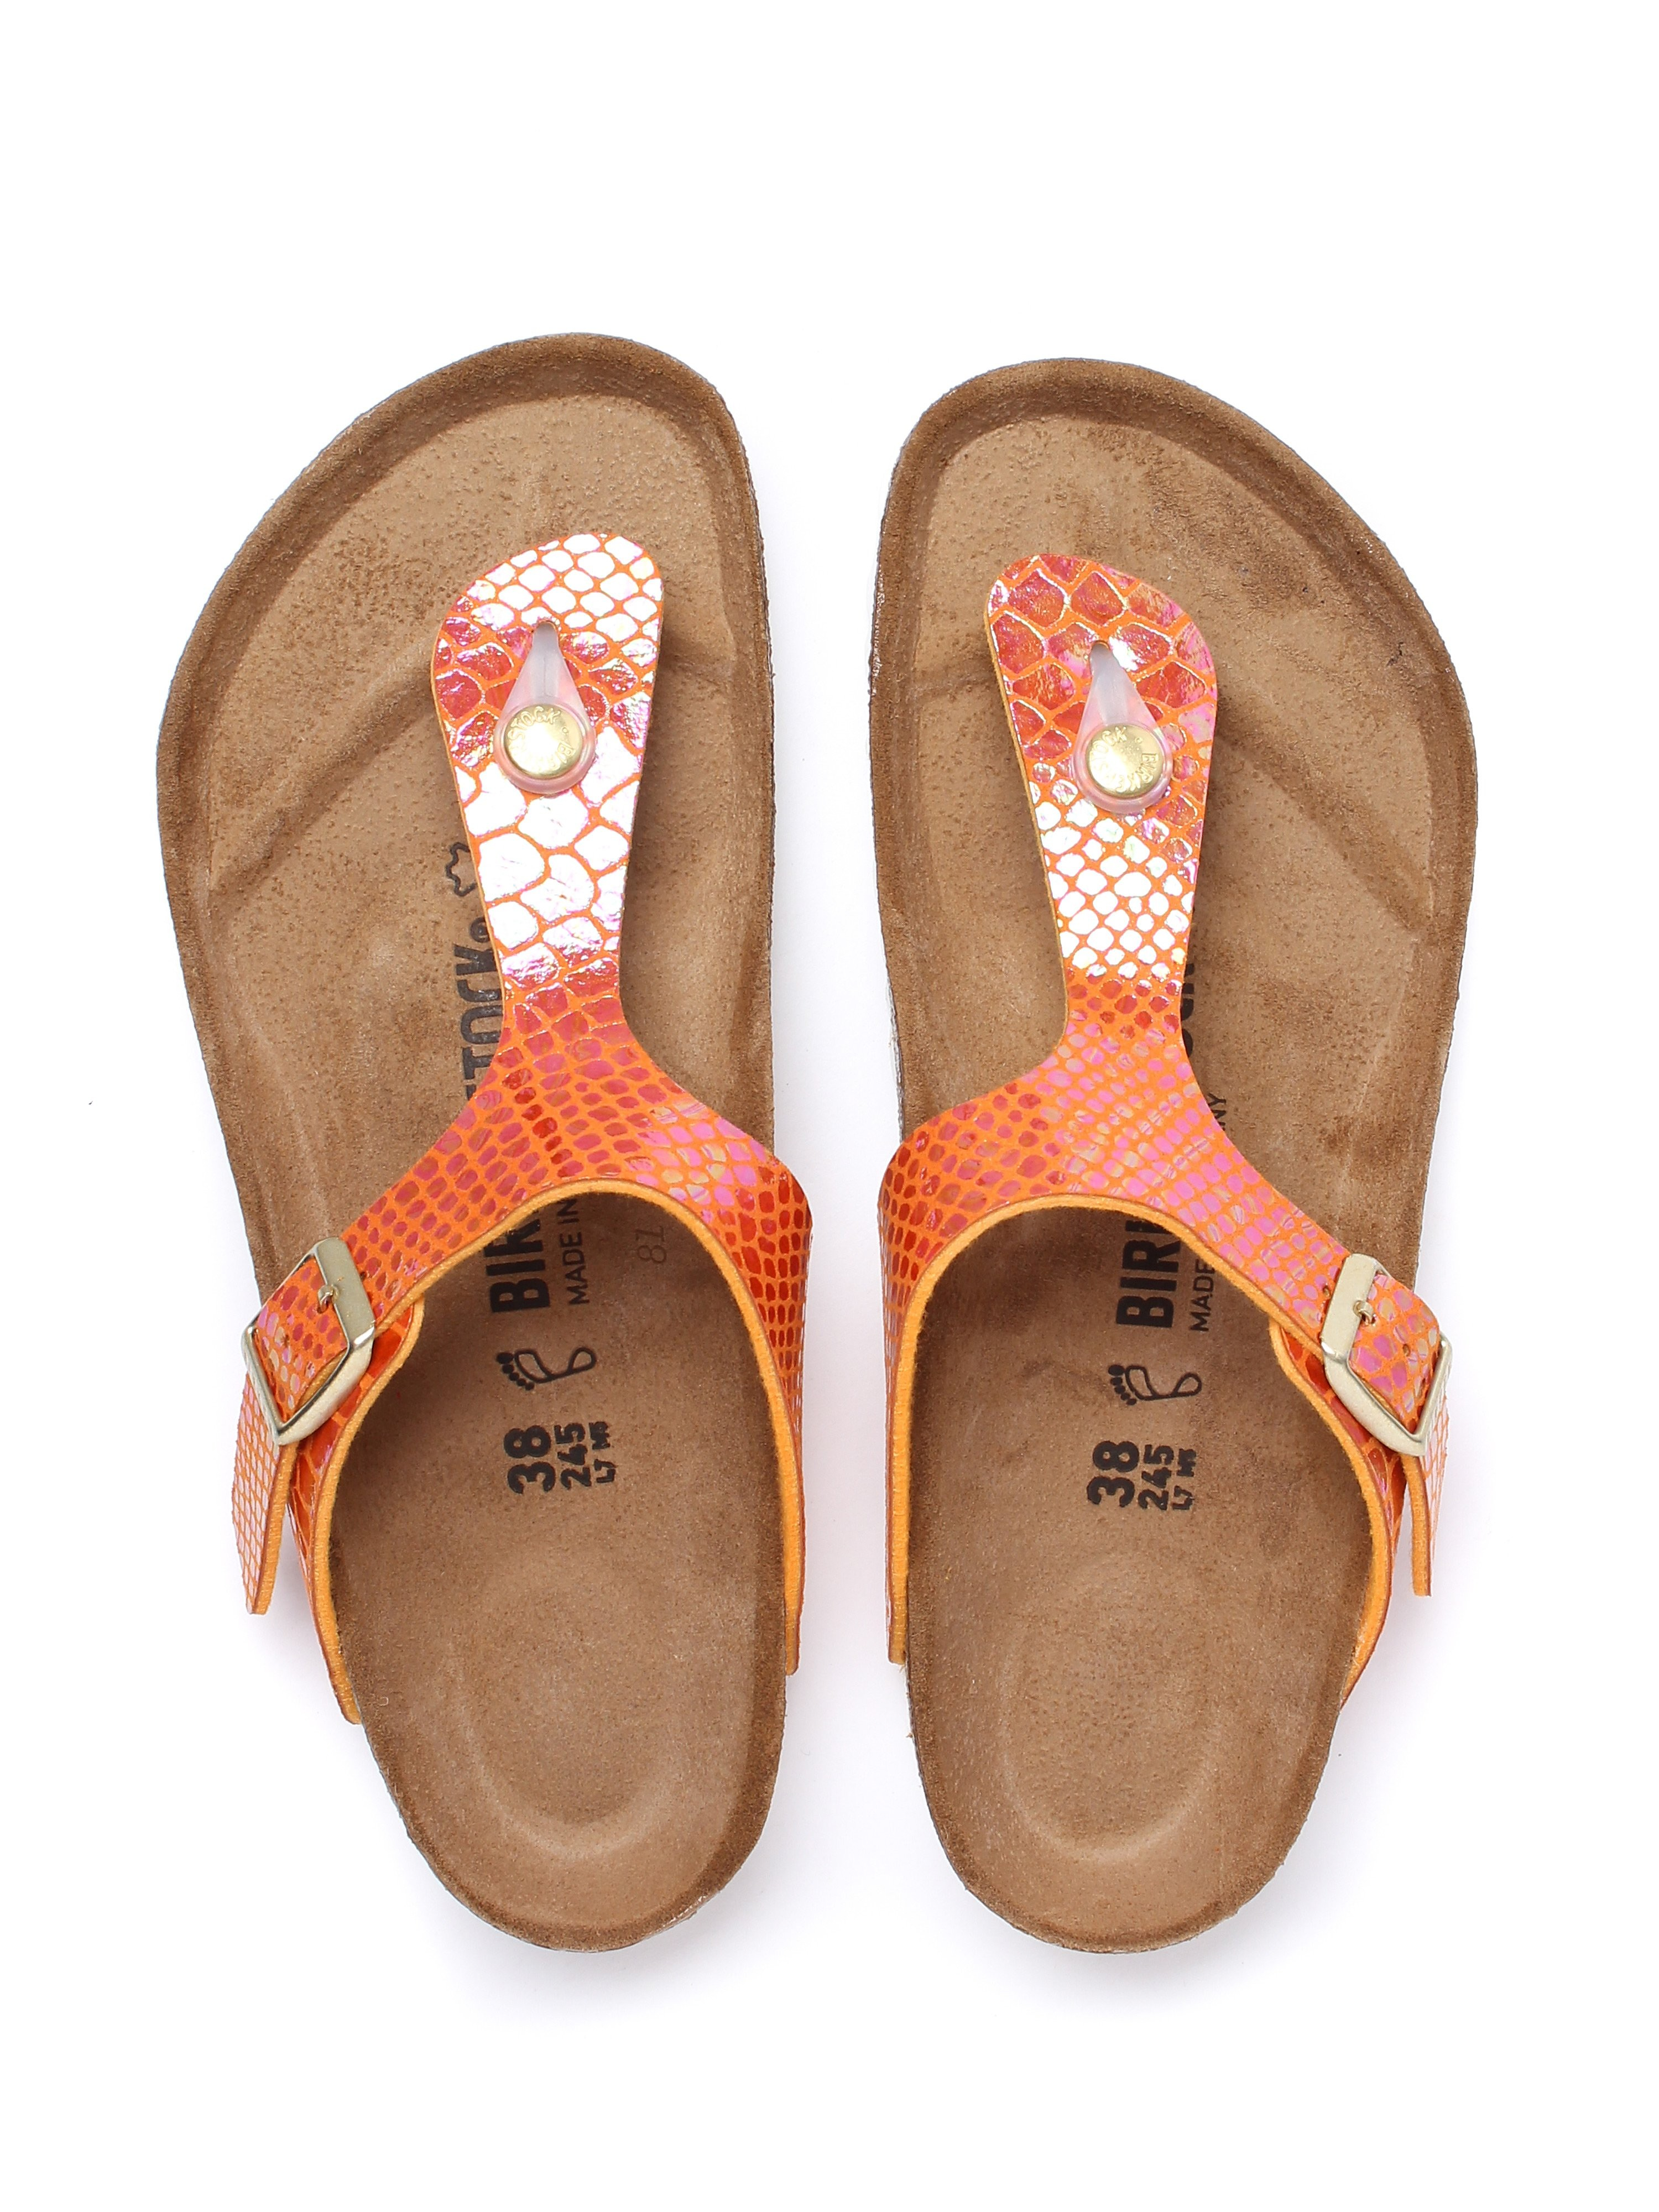 Birkenstock Women's Gizeh Regular Fit Sandals -  Orange Snake Skin